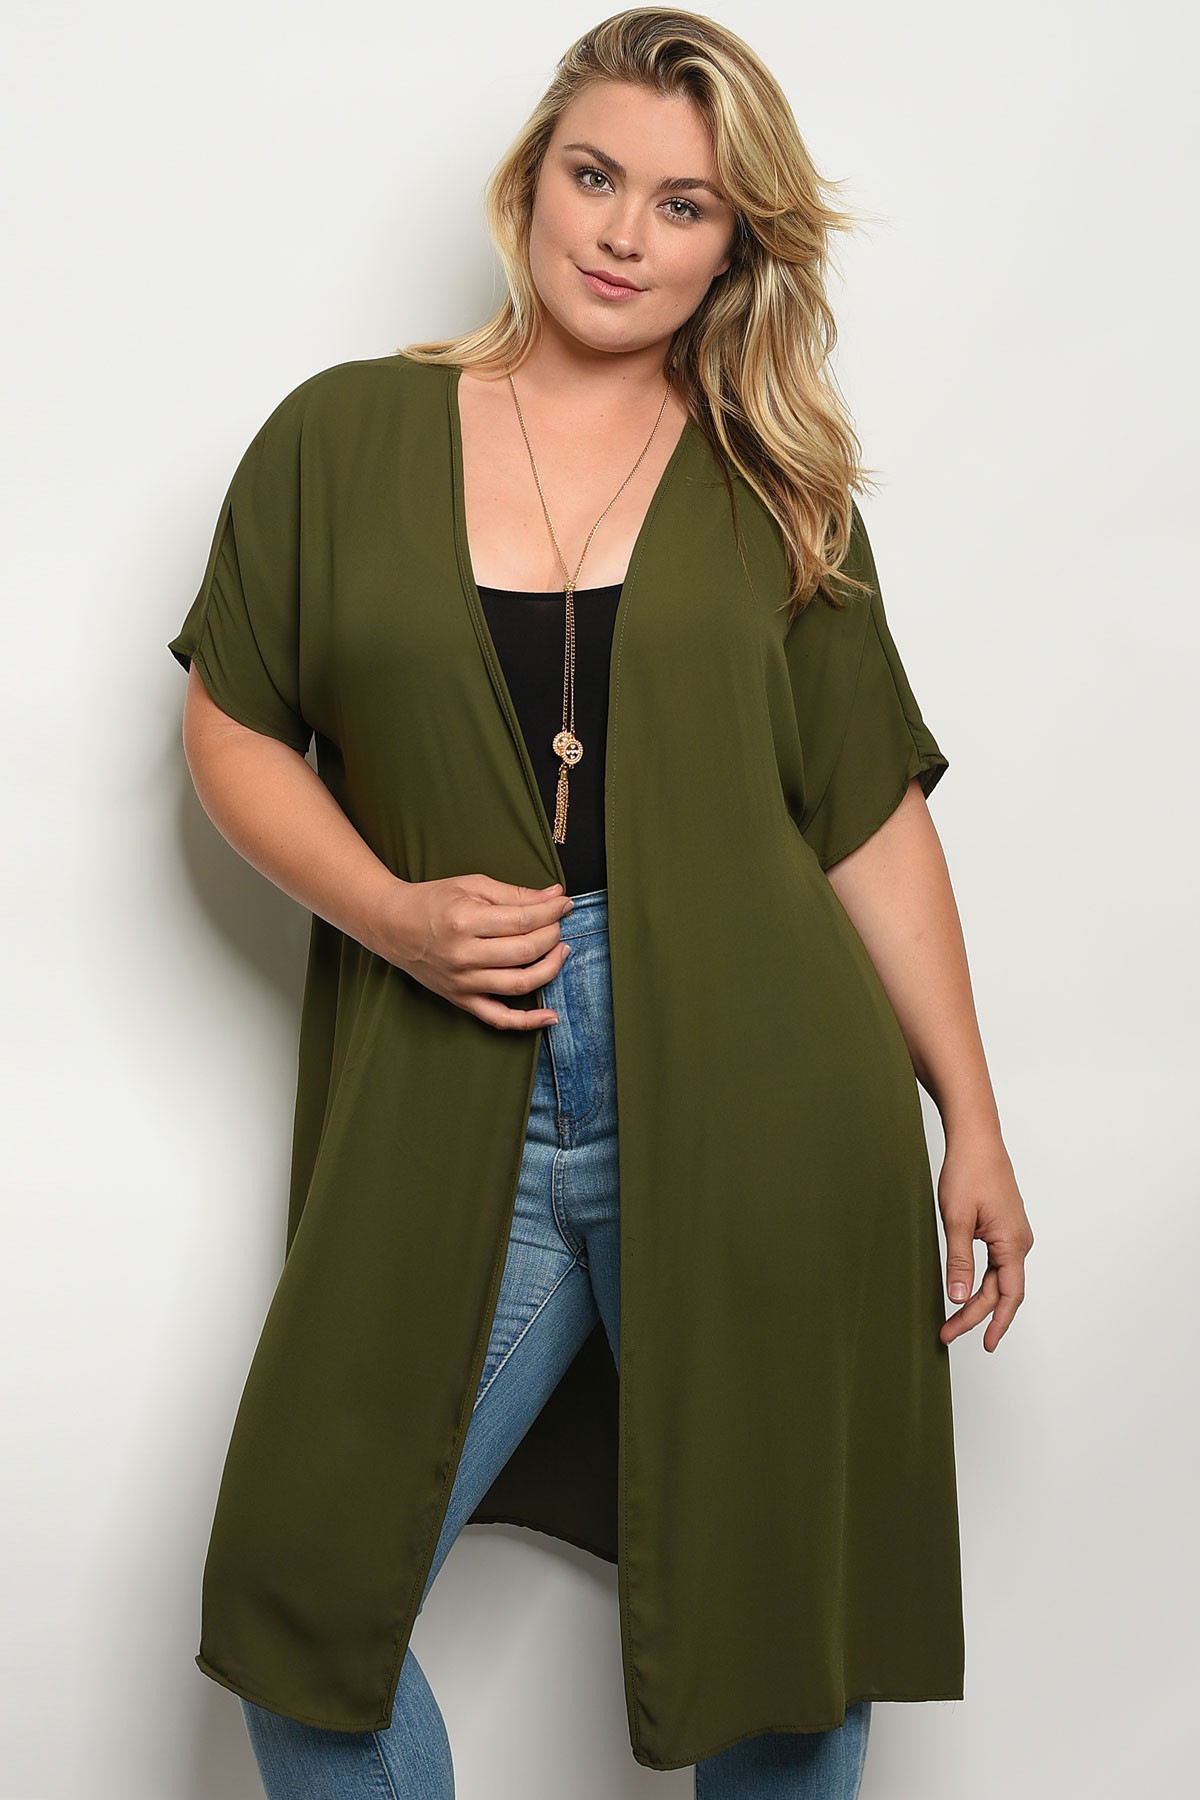 989e4e77f4 ... PLUS SIZE TOP 2-2-2 · Larger Photo ...